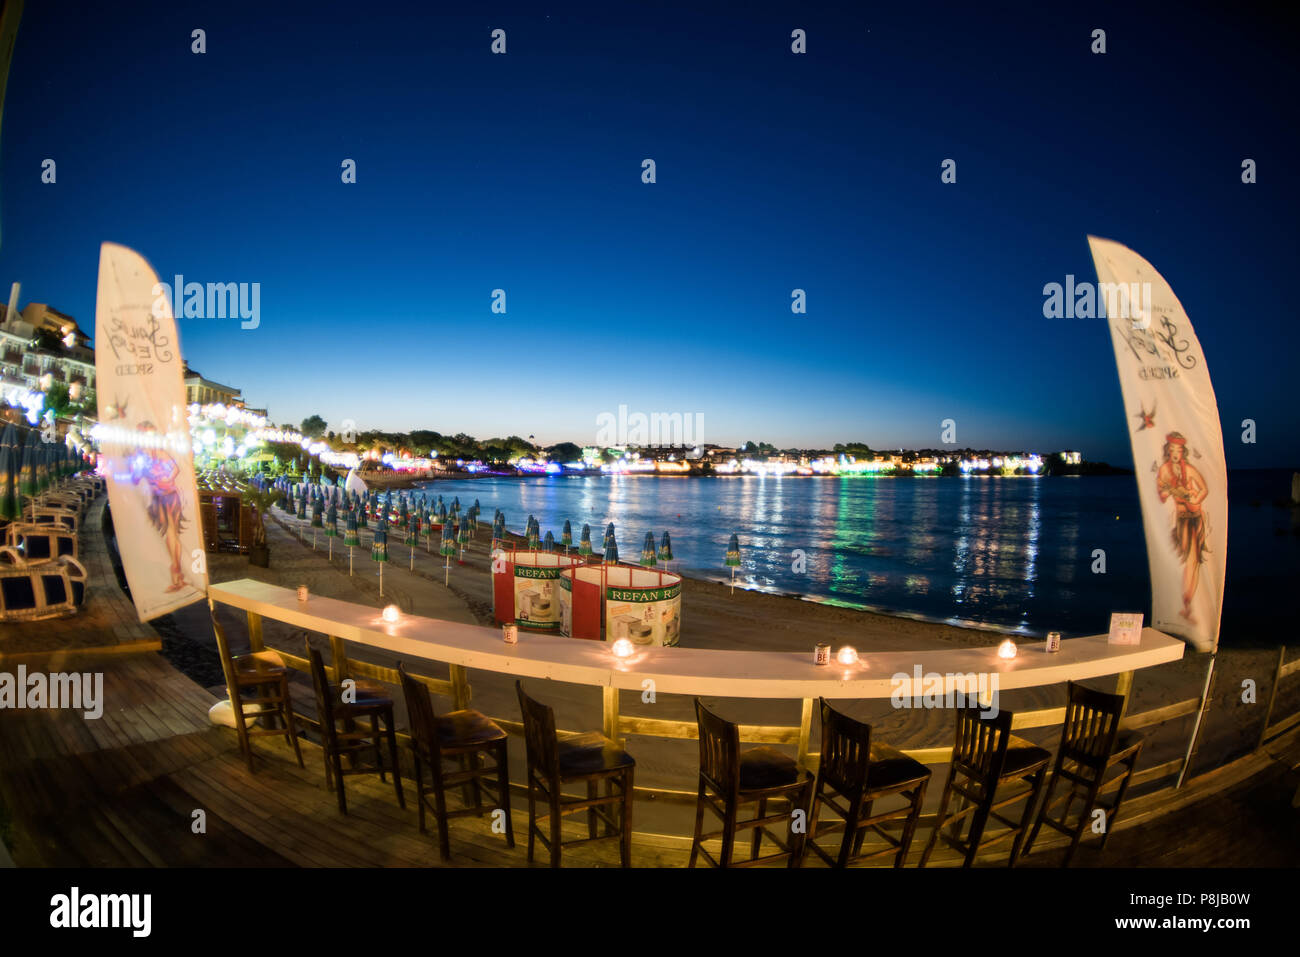 Sozopol, Bulgaria - September 11, 2016: Aloha beach bar on the coast old city Stock Photo